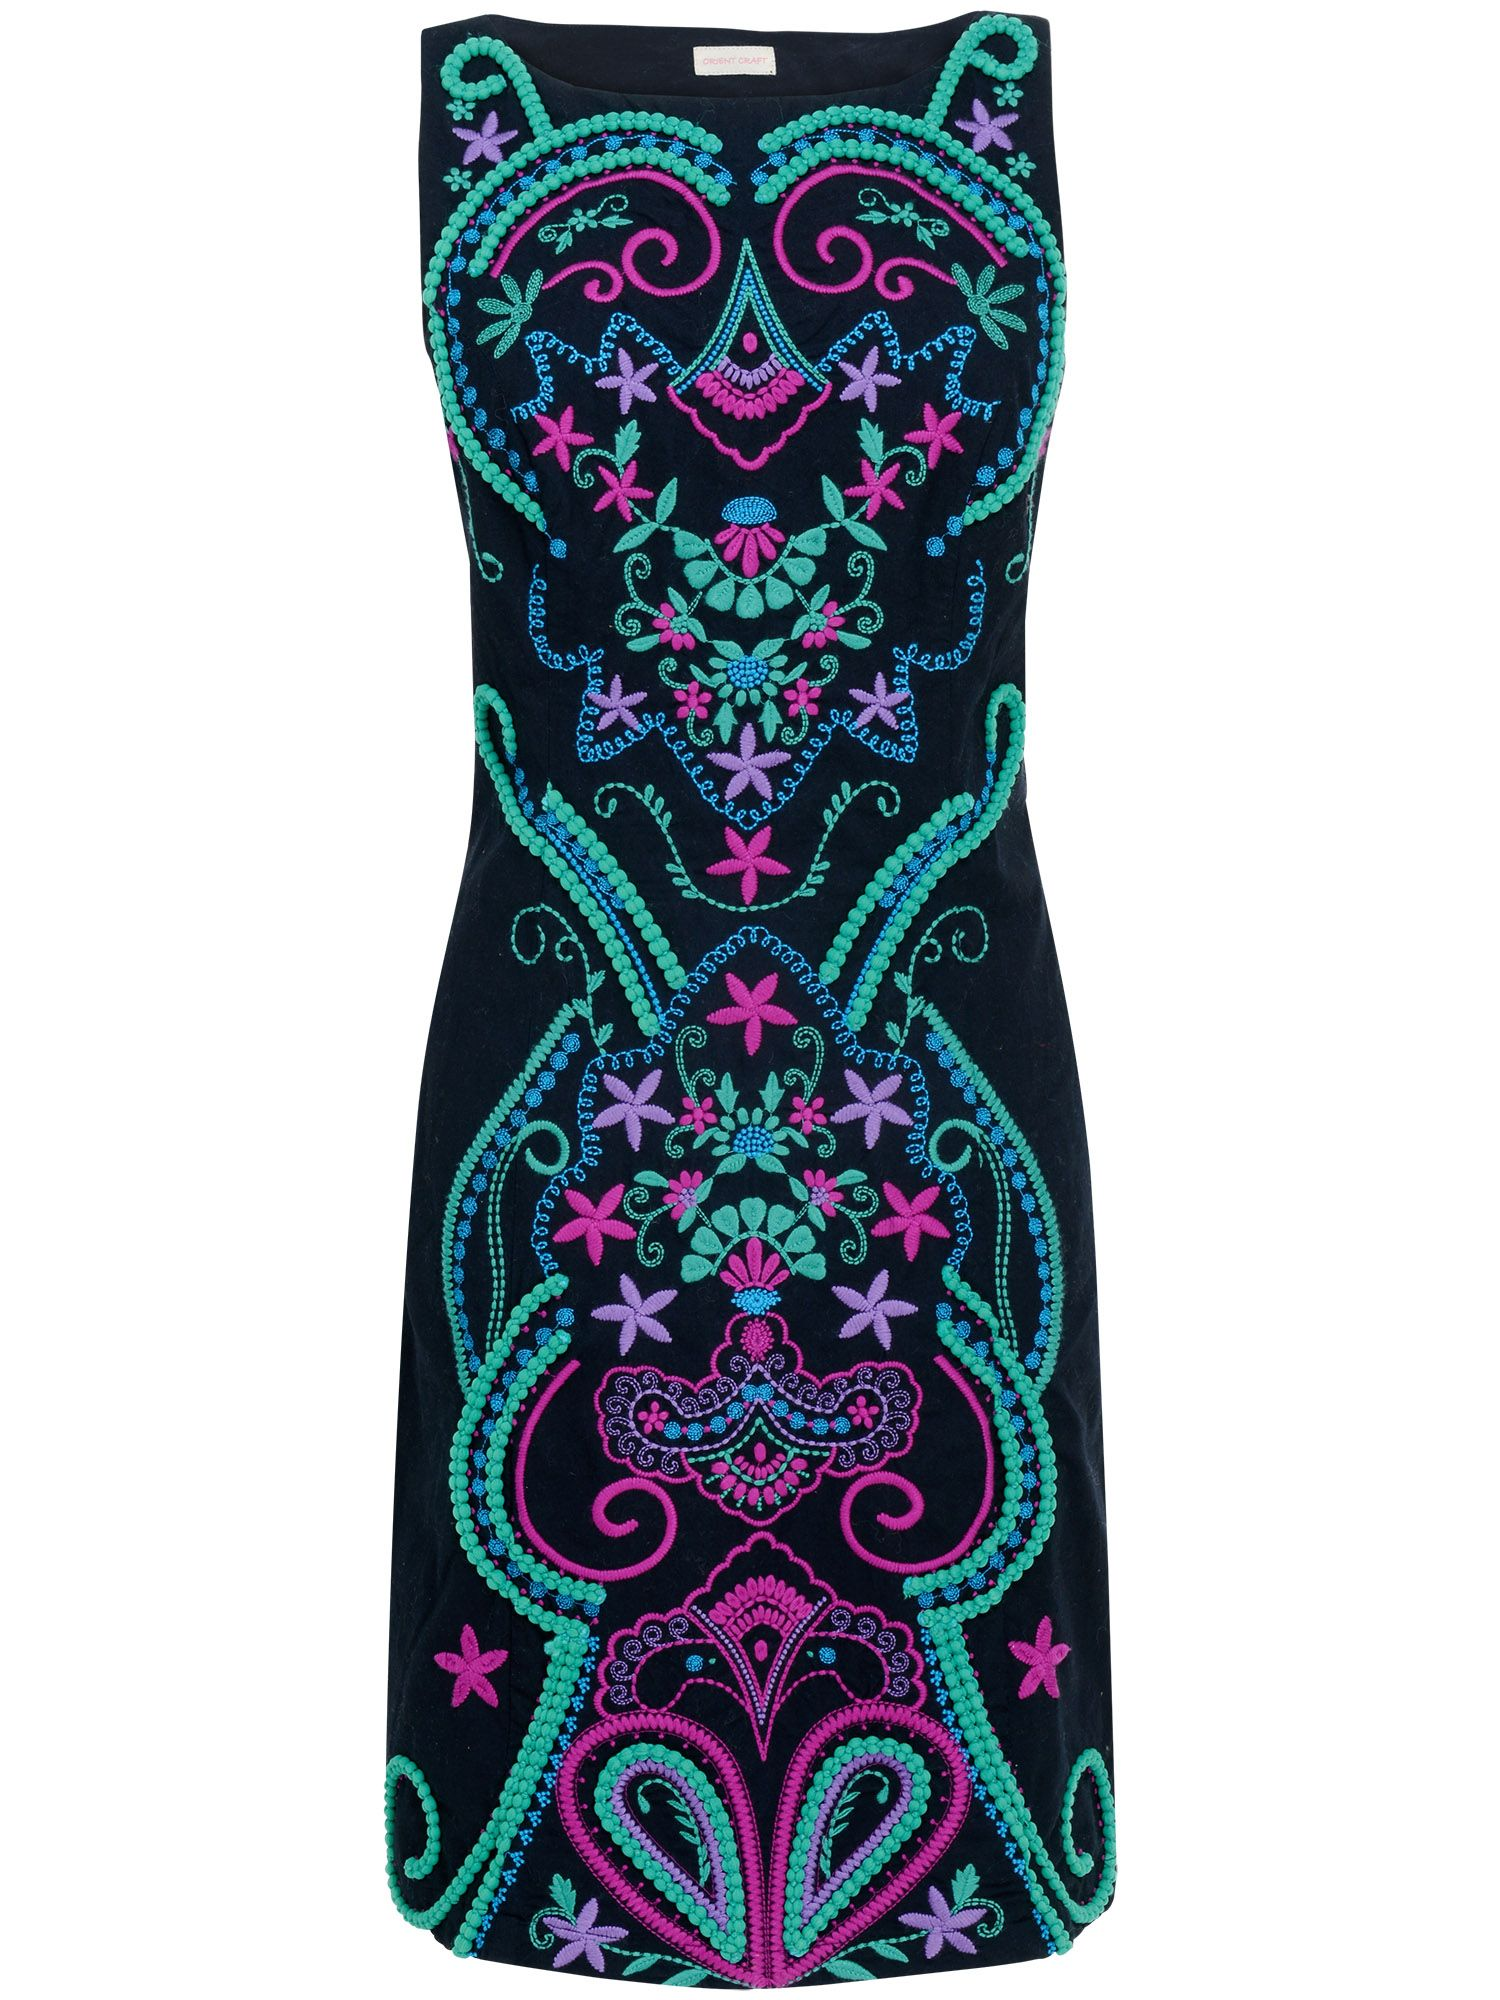 Sheridan embellished shift dress